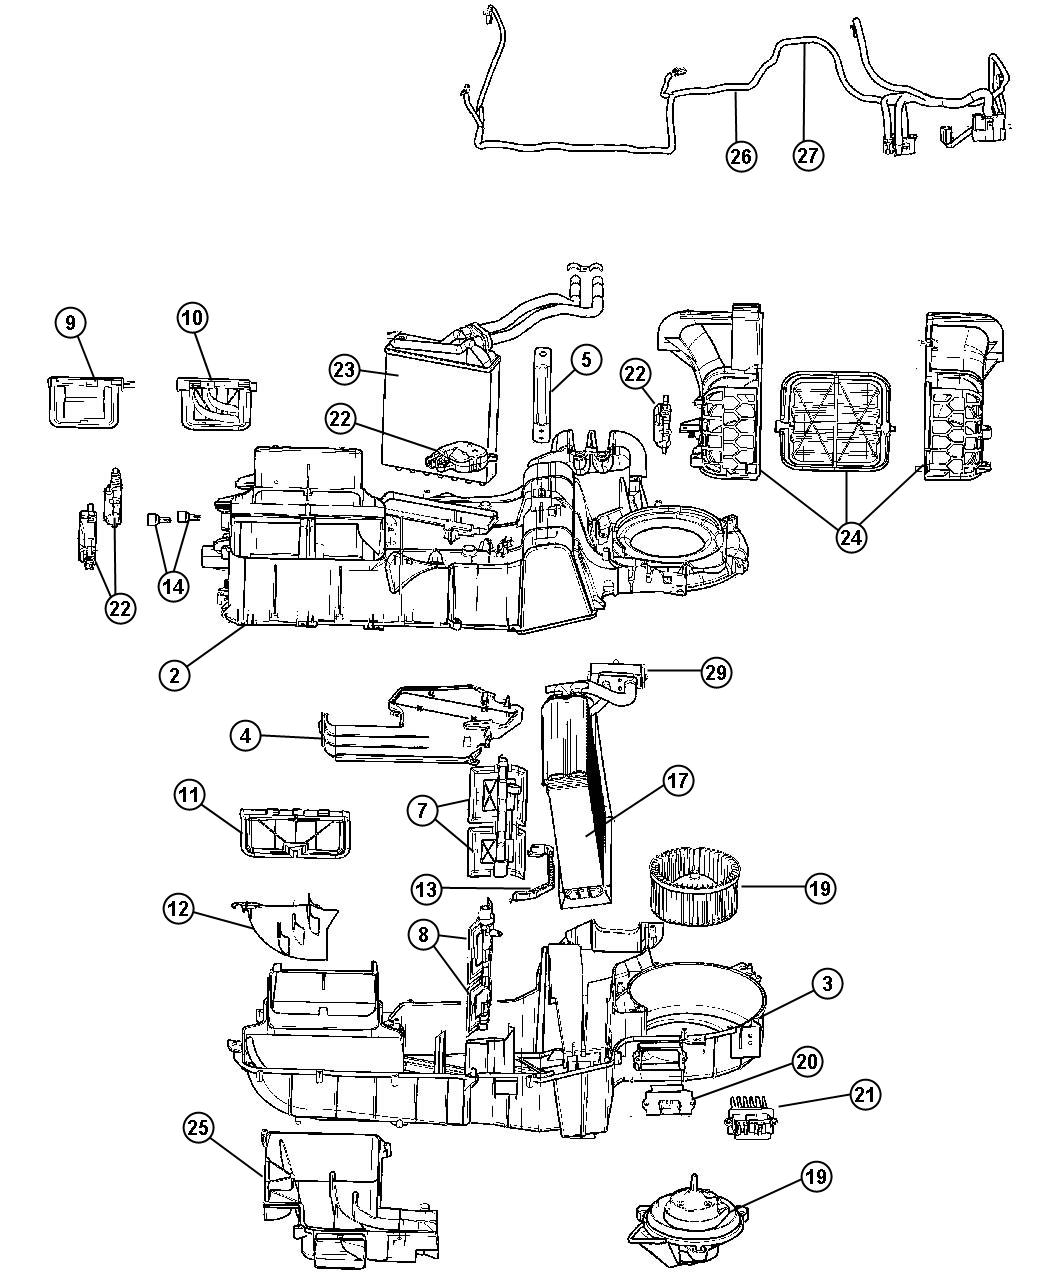 Dodge Durango Housing kit. Used for: a/c and heater. [air